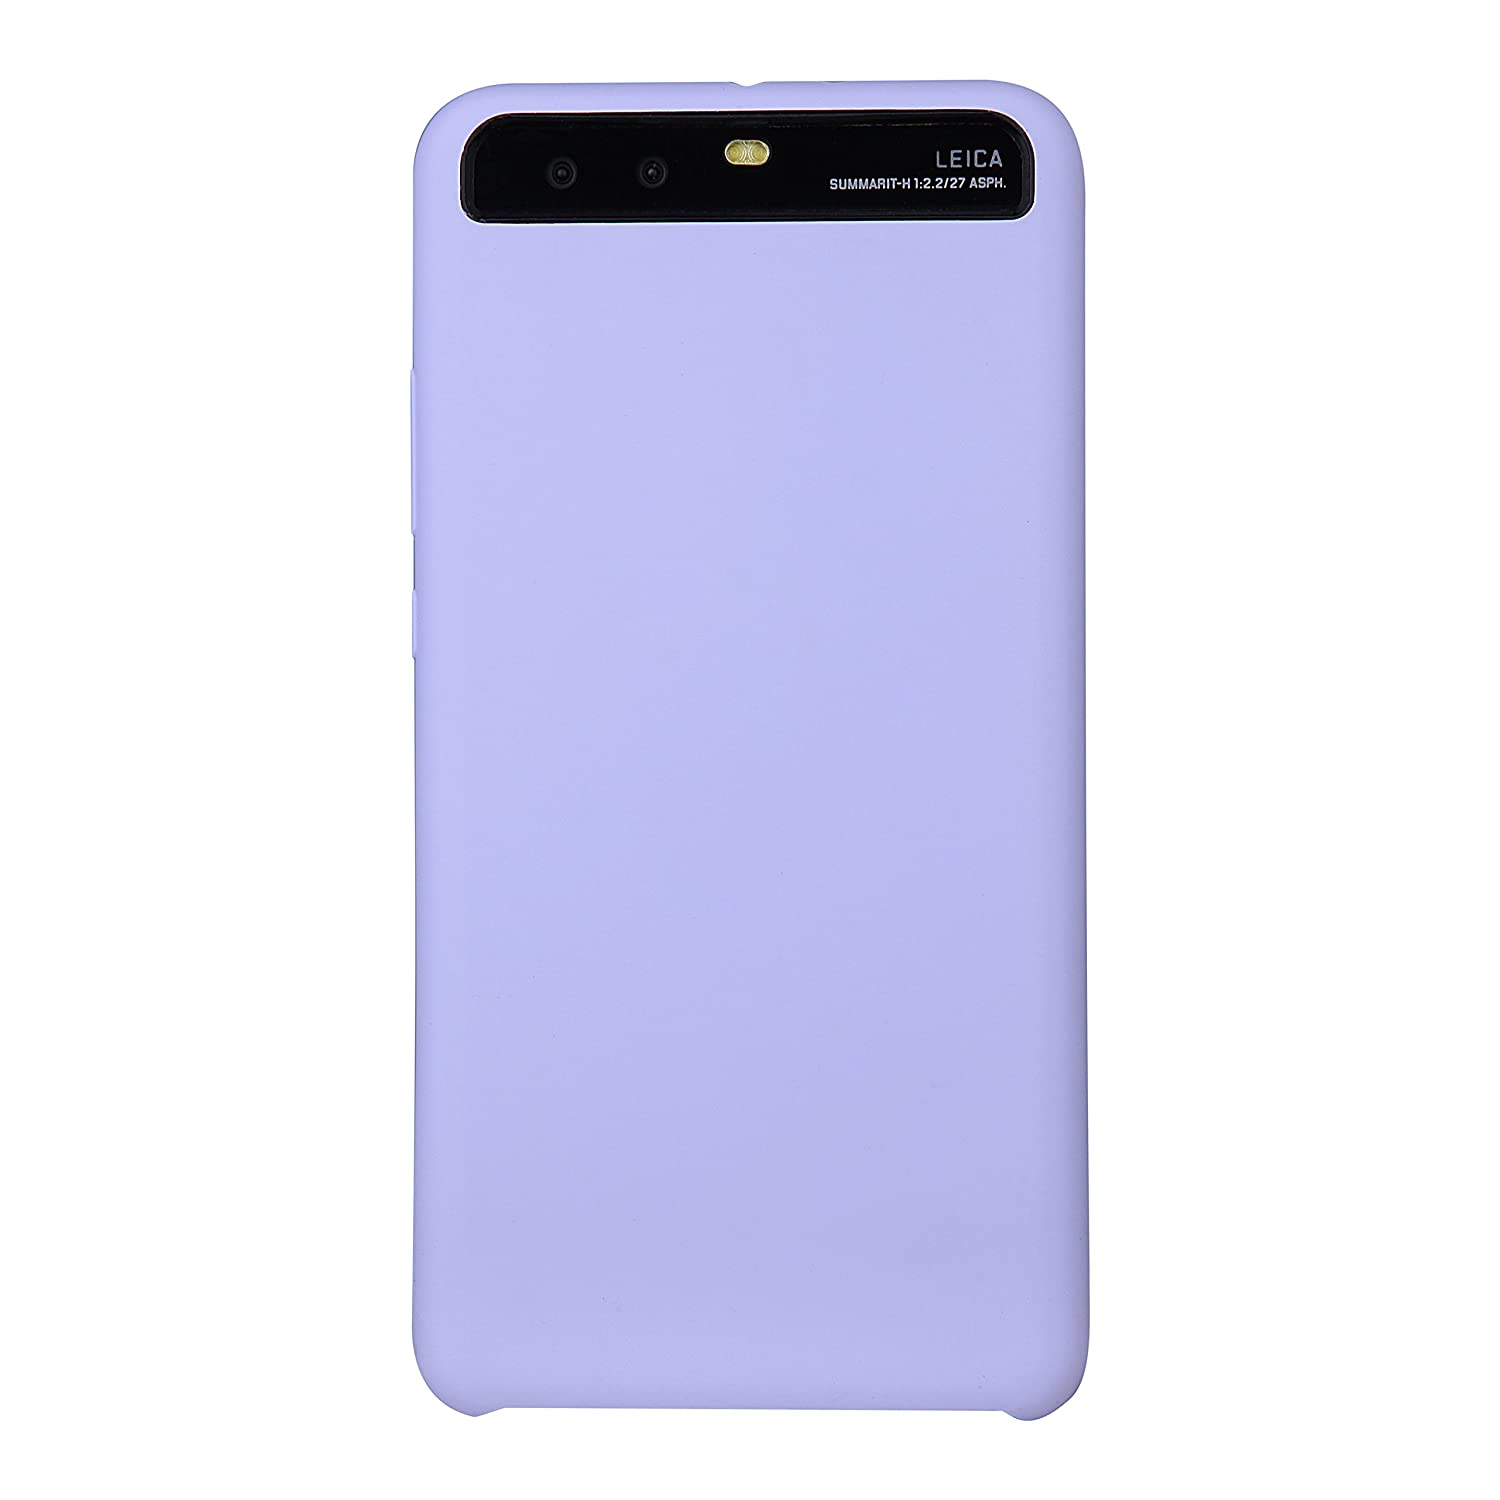 Xiu7 Candy Silicone Case for Huawei P10 Plus, ultra-slim and lightweight design-Purple